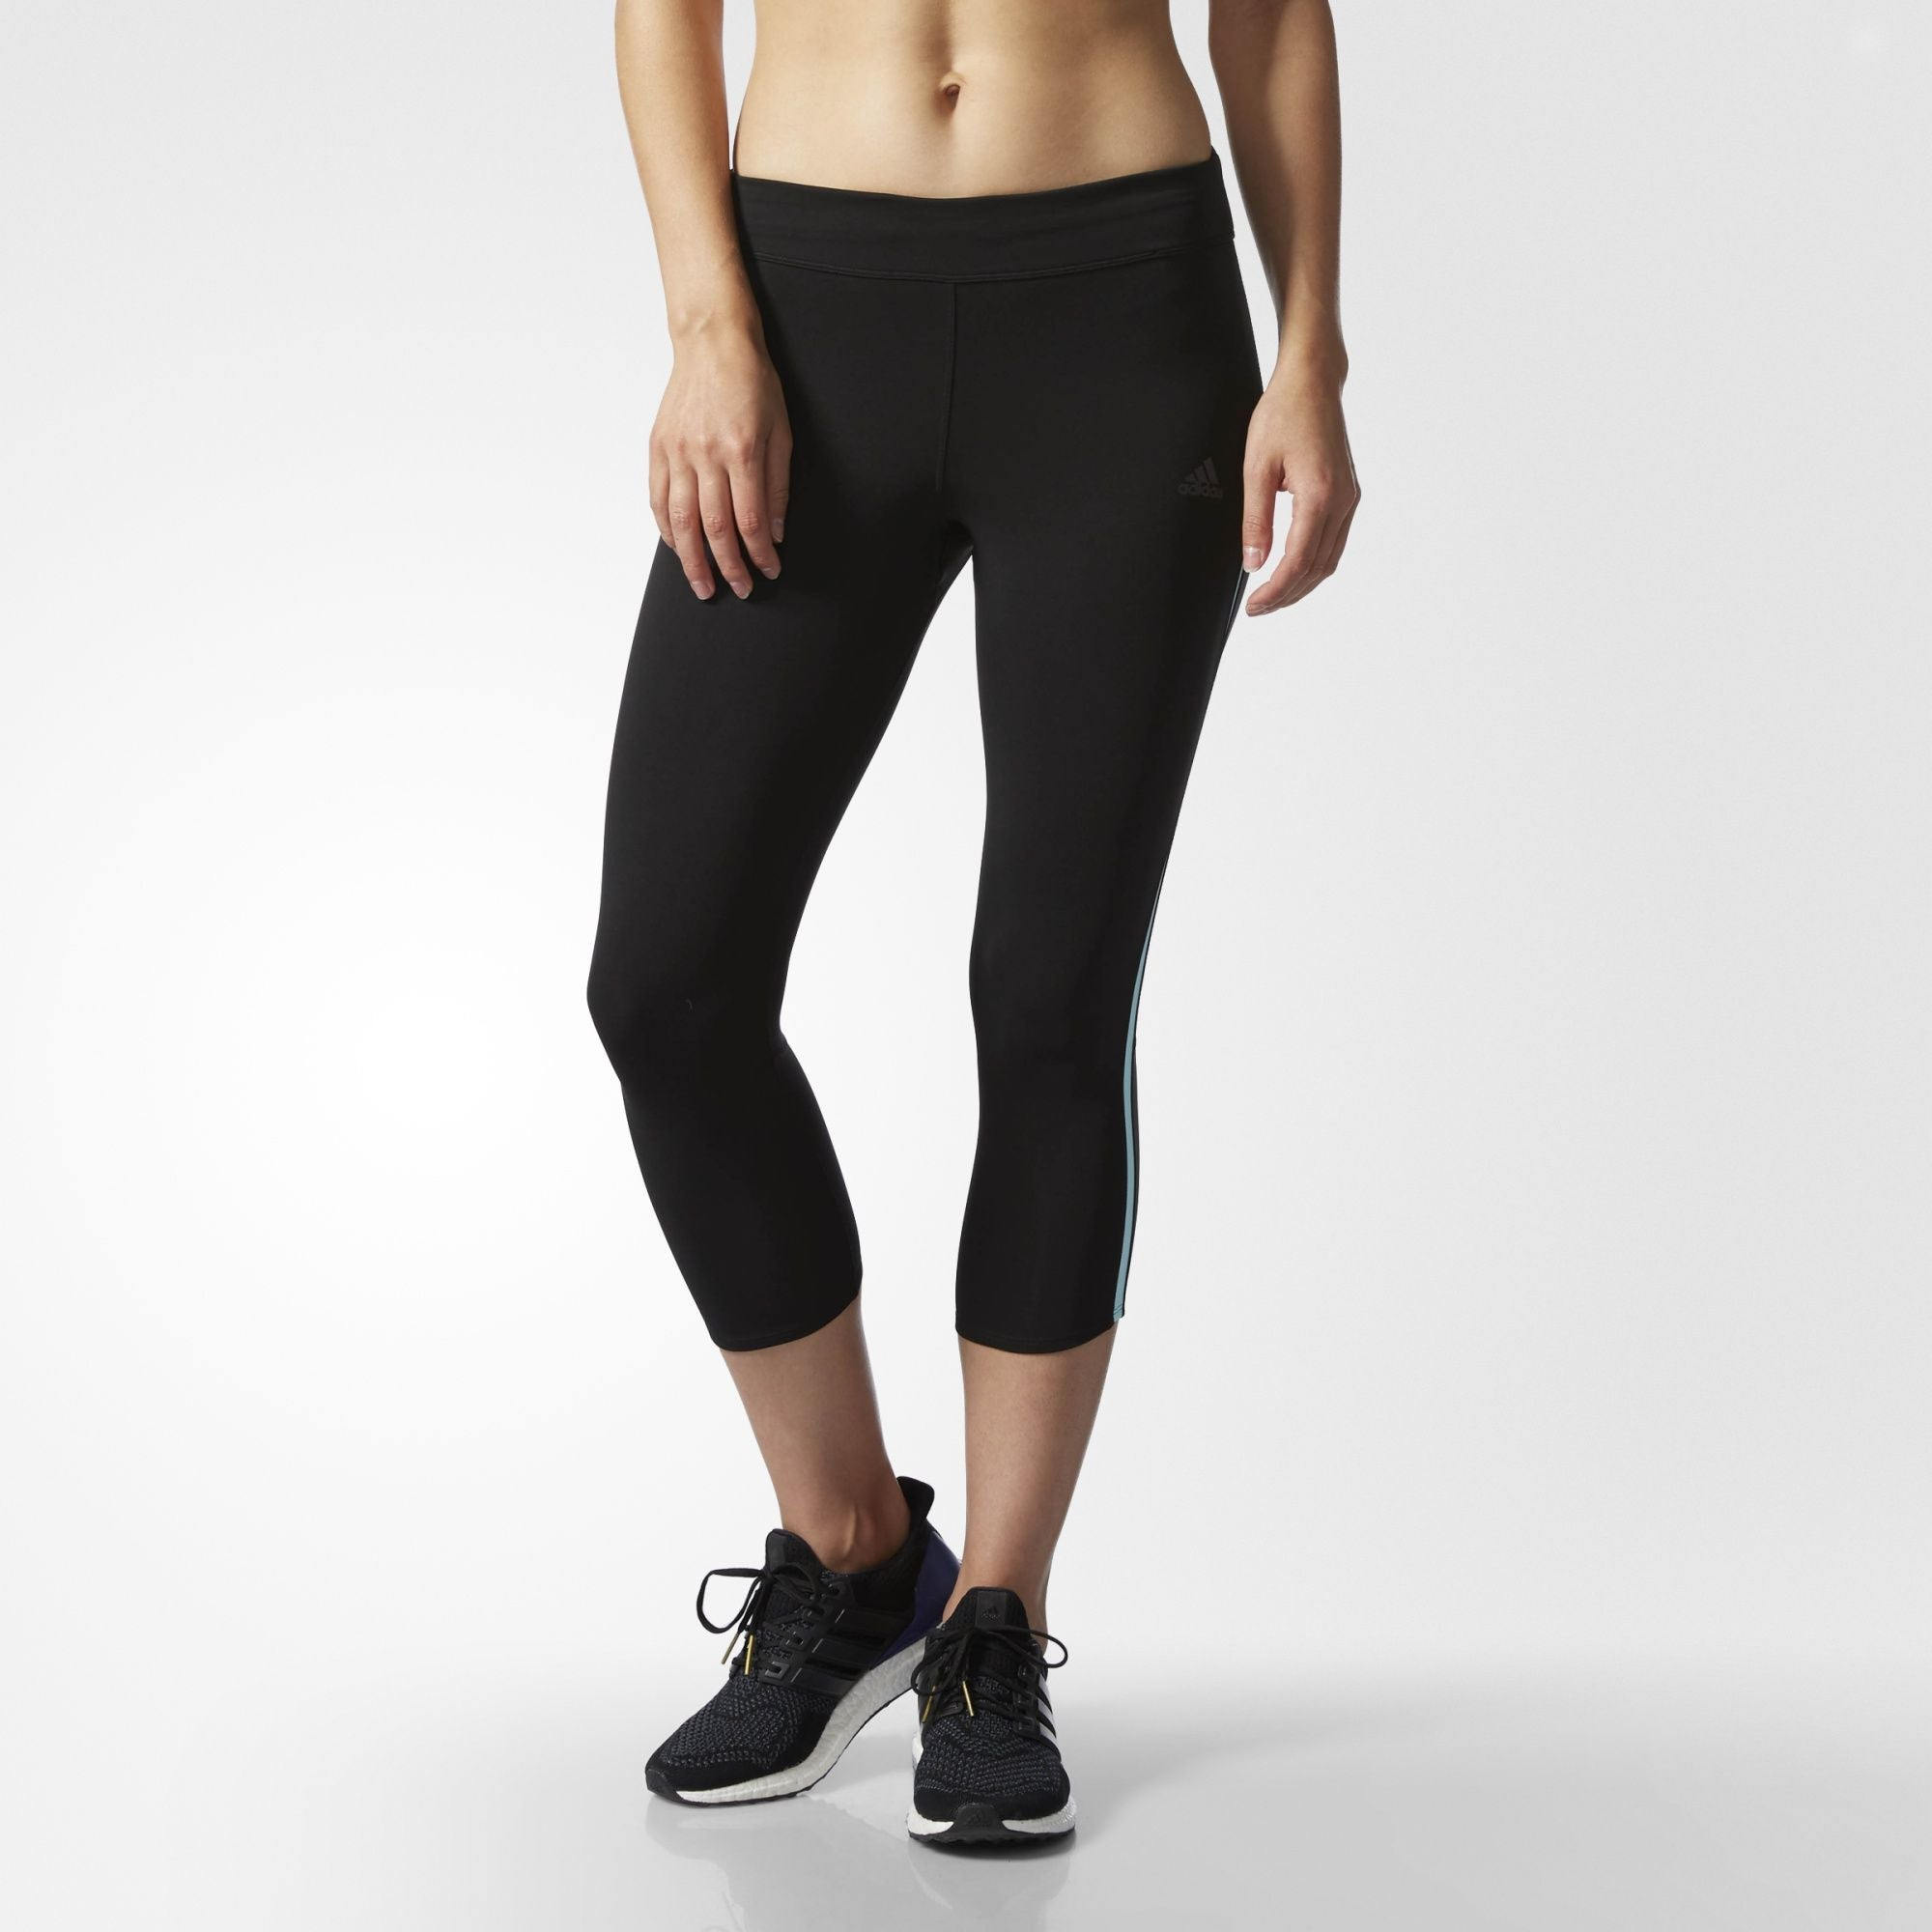 Adidas Response 3/4 Capri Womens Running Tights - Black B47766